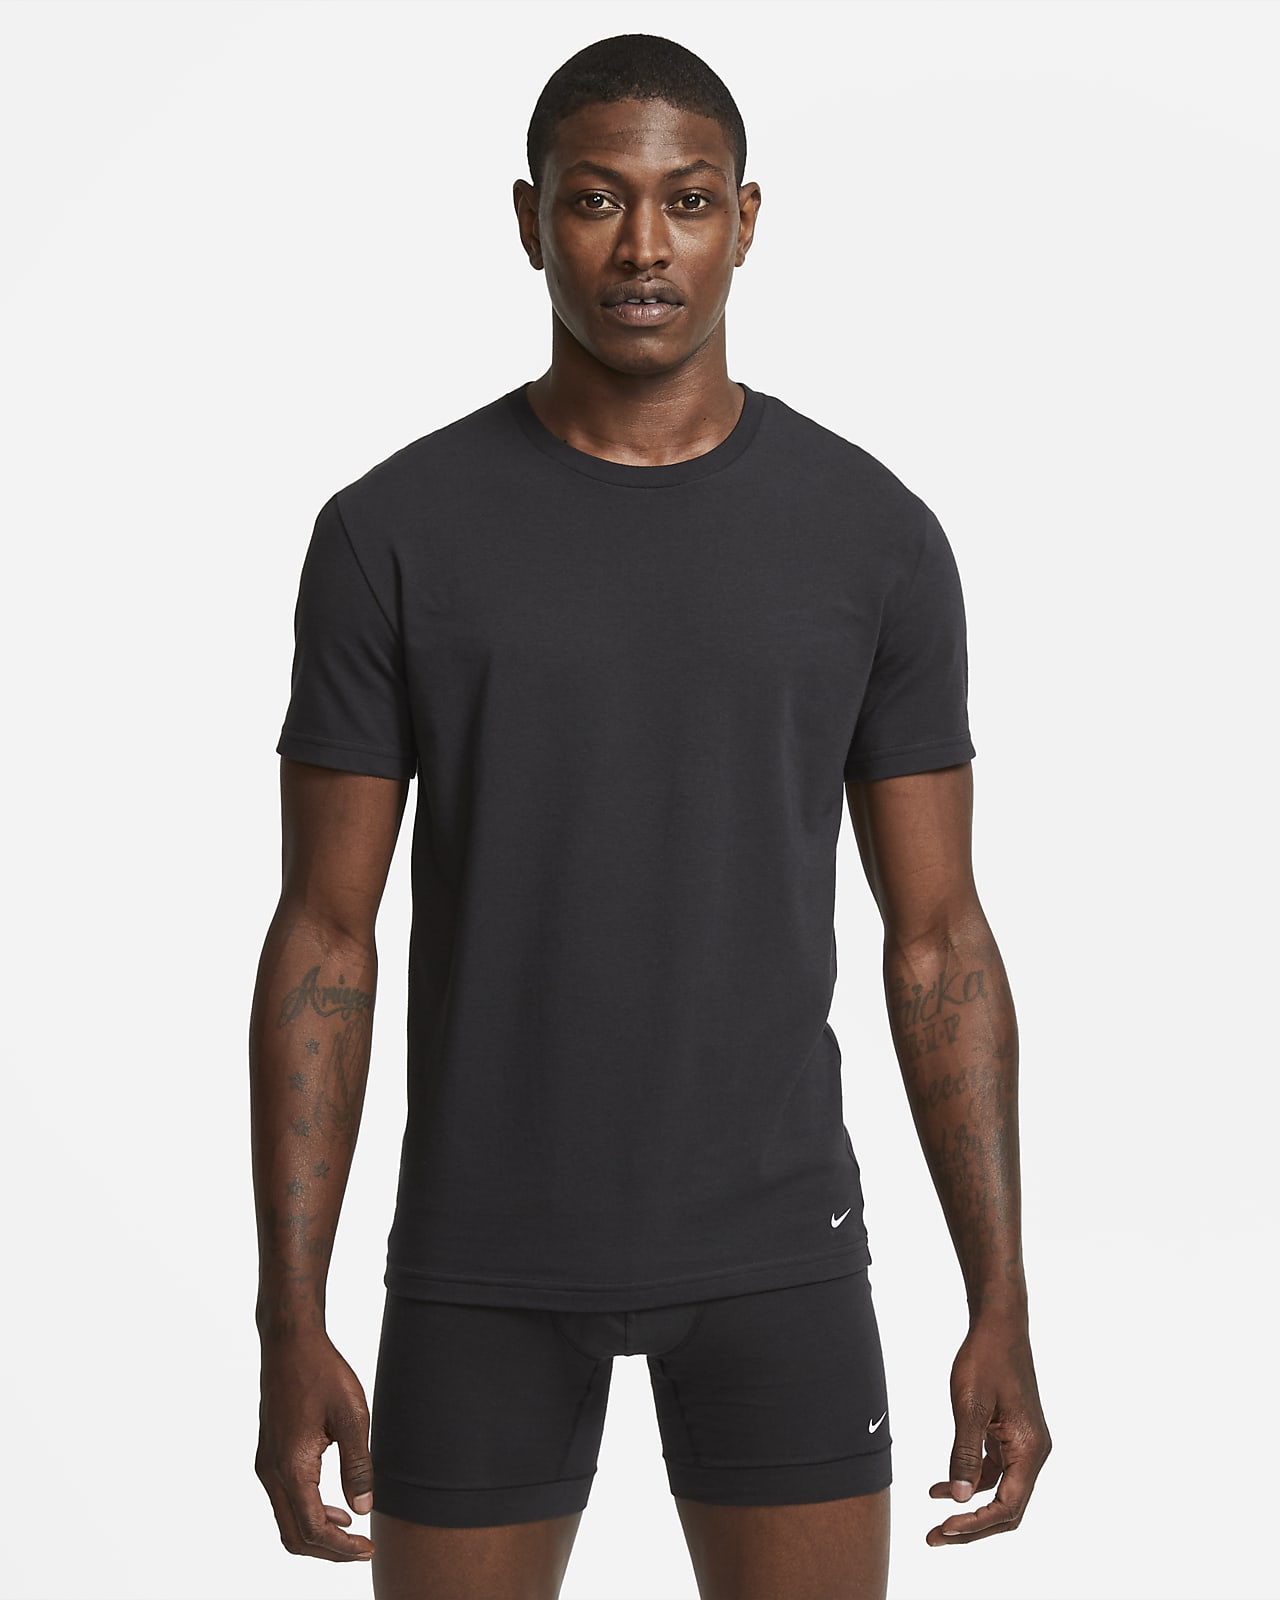 Nike Everyday Cotton Stretch Men's Slim Fit Crew-Neck Undershirt (2-Pack)